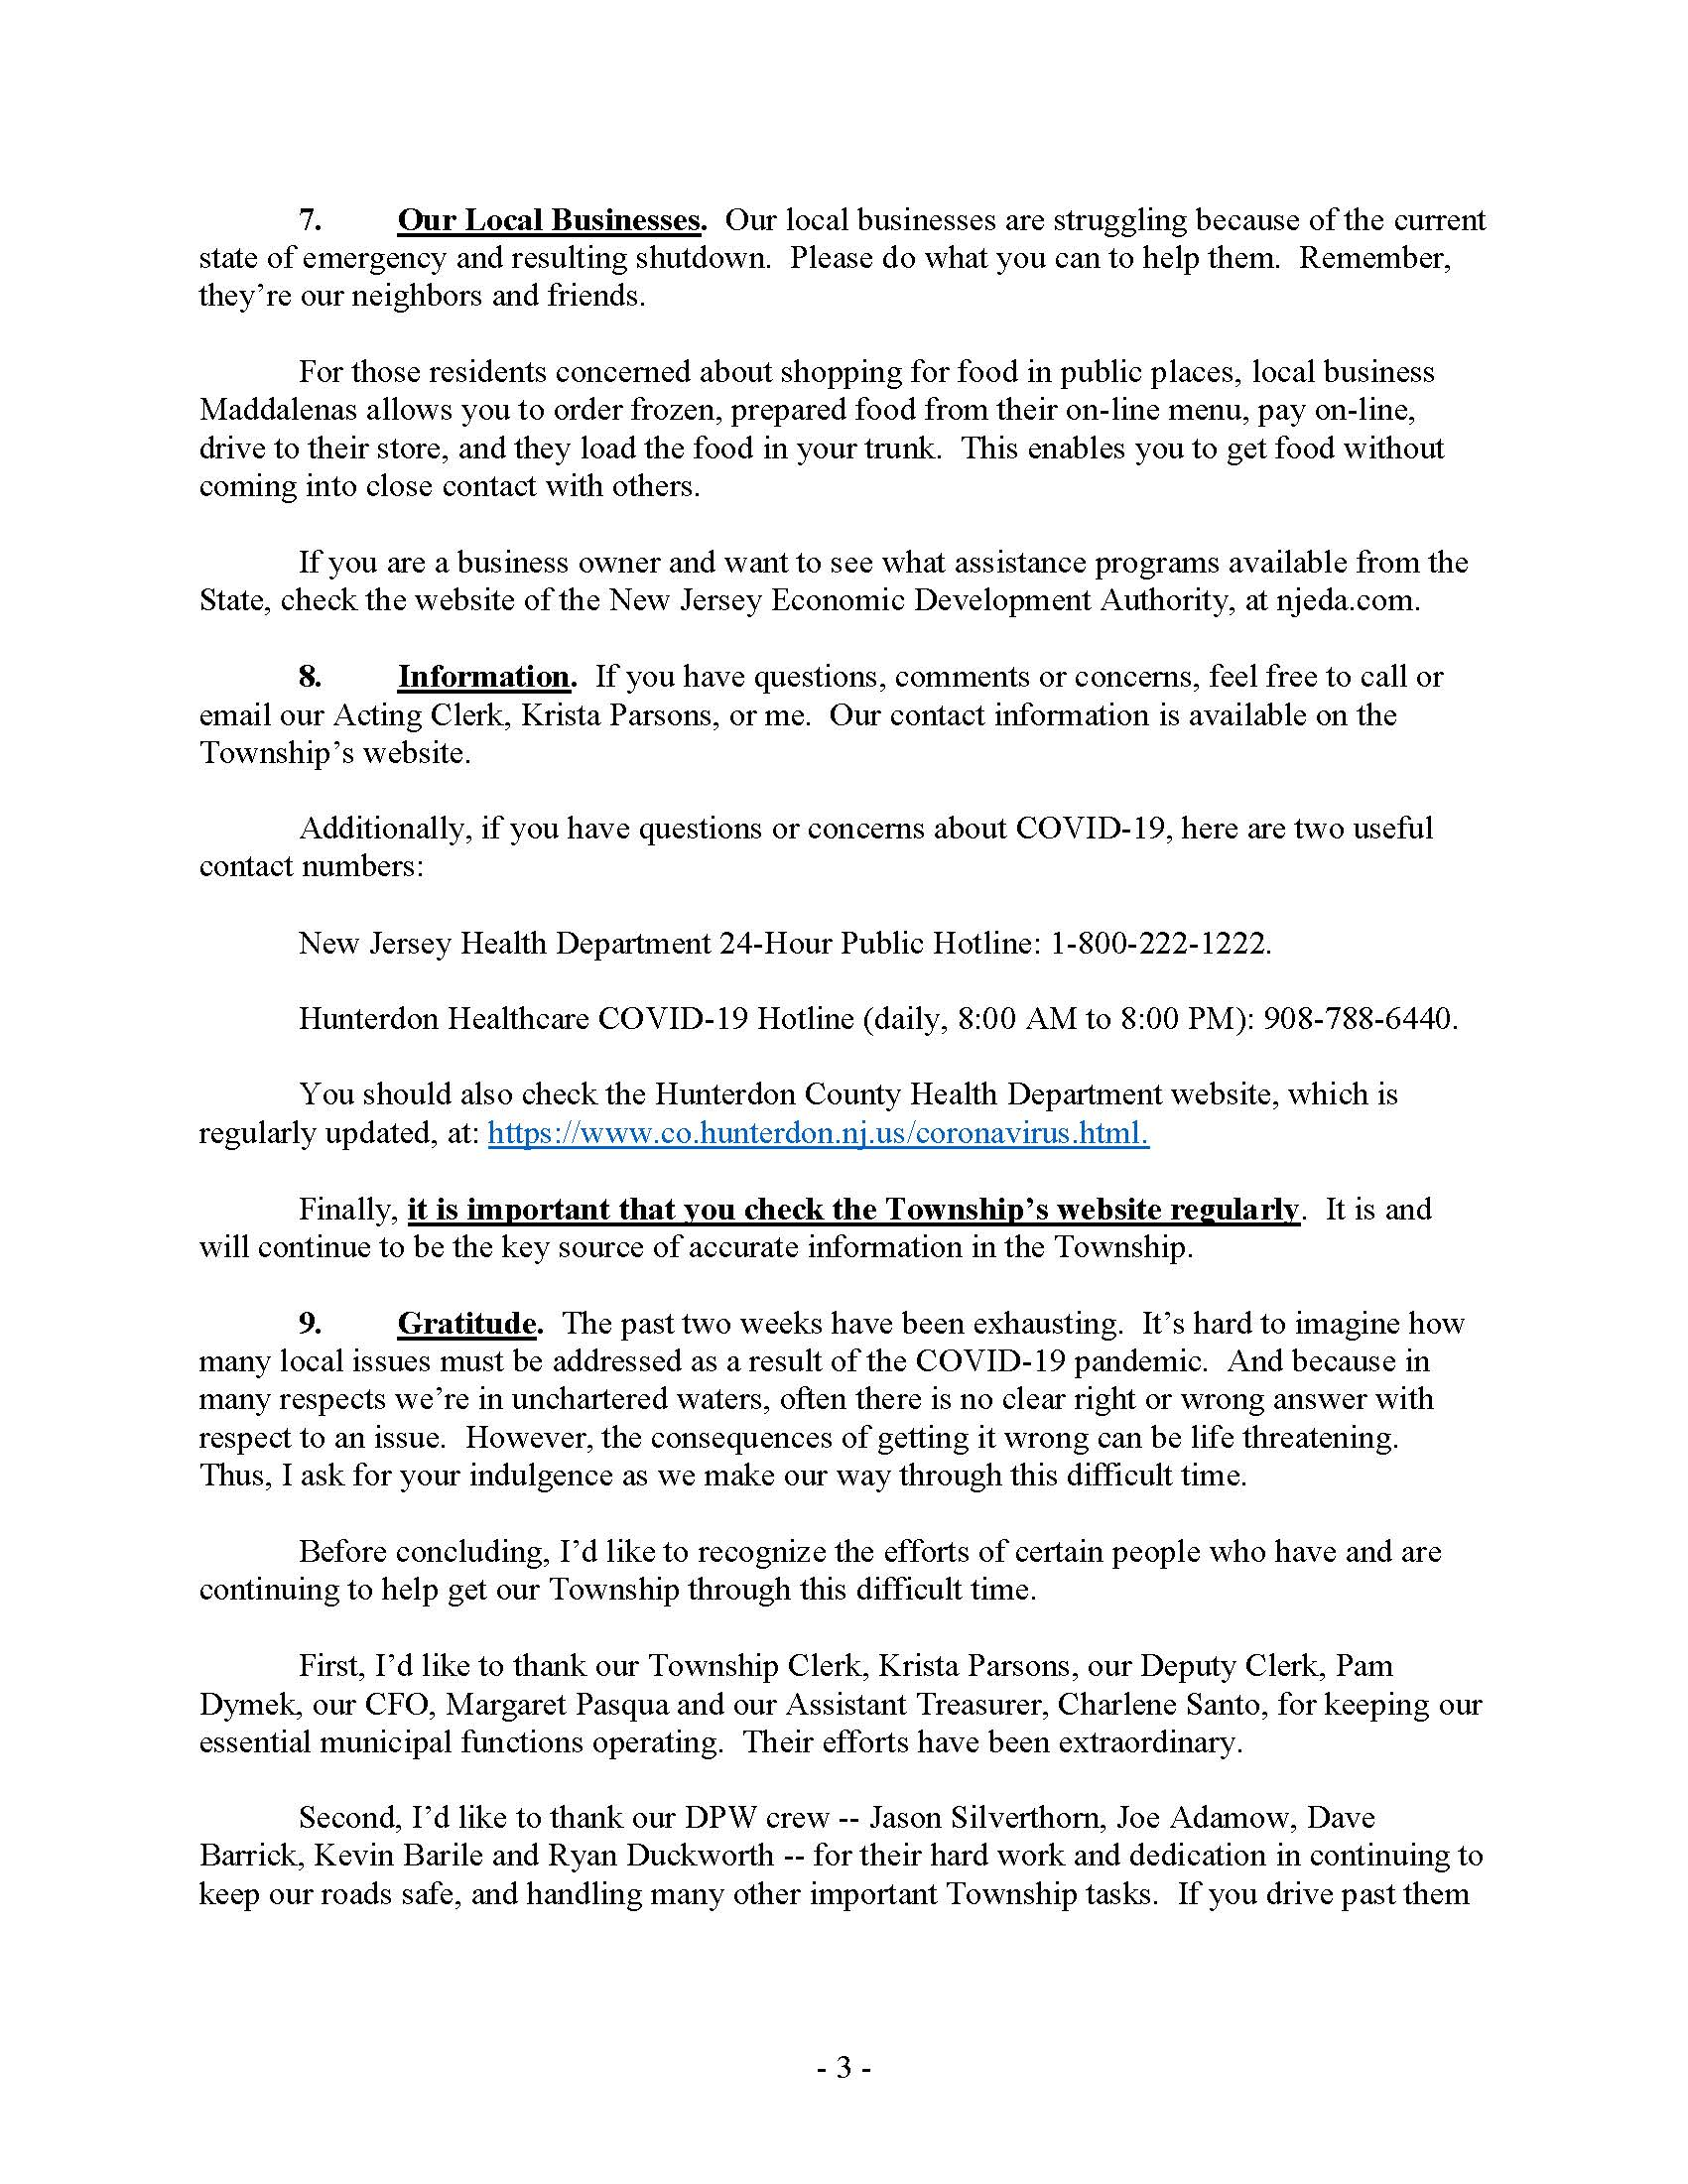 RAW (East Amwell)_  3_28_2020 Update to Residents re COVID-19 Matters (1)_Page_3